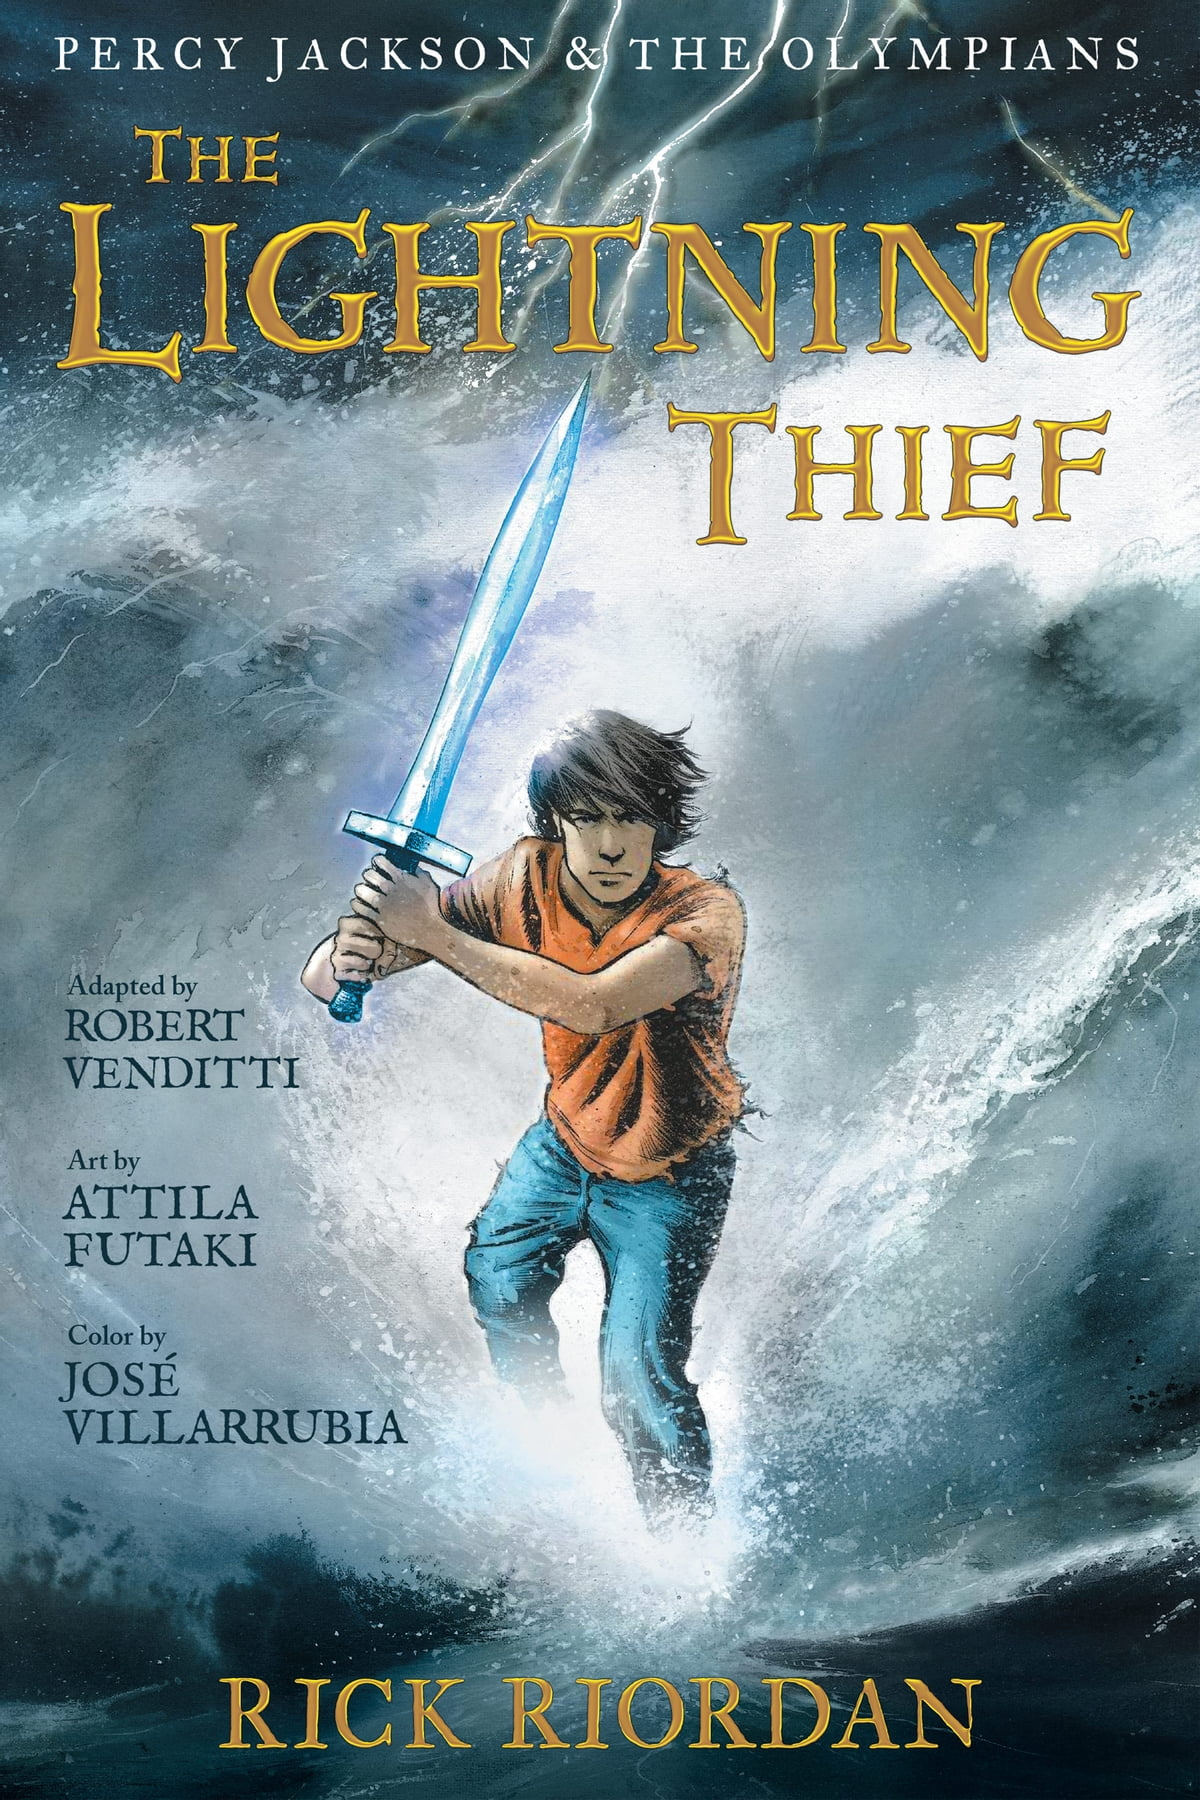 Percy Jackson And The Olympians: The Lightning Thief: The Graphic Novel  Ebook By Rick